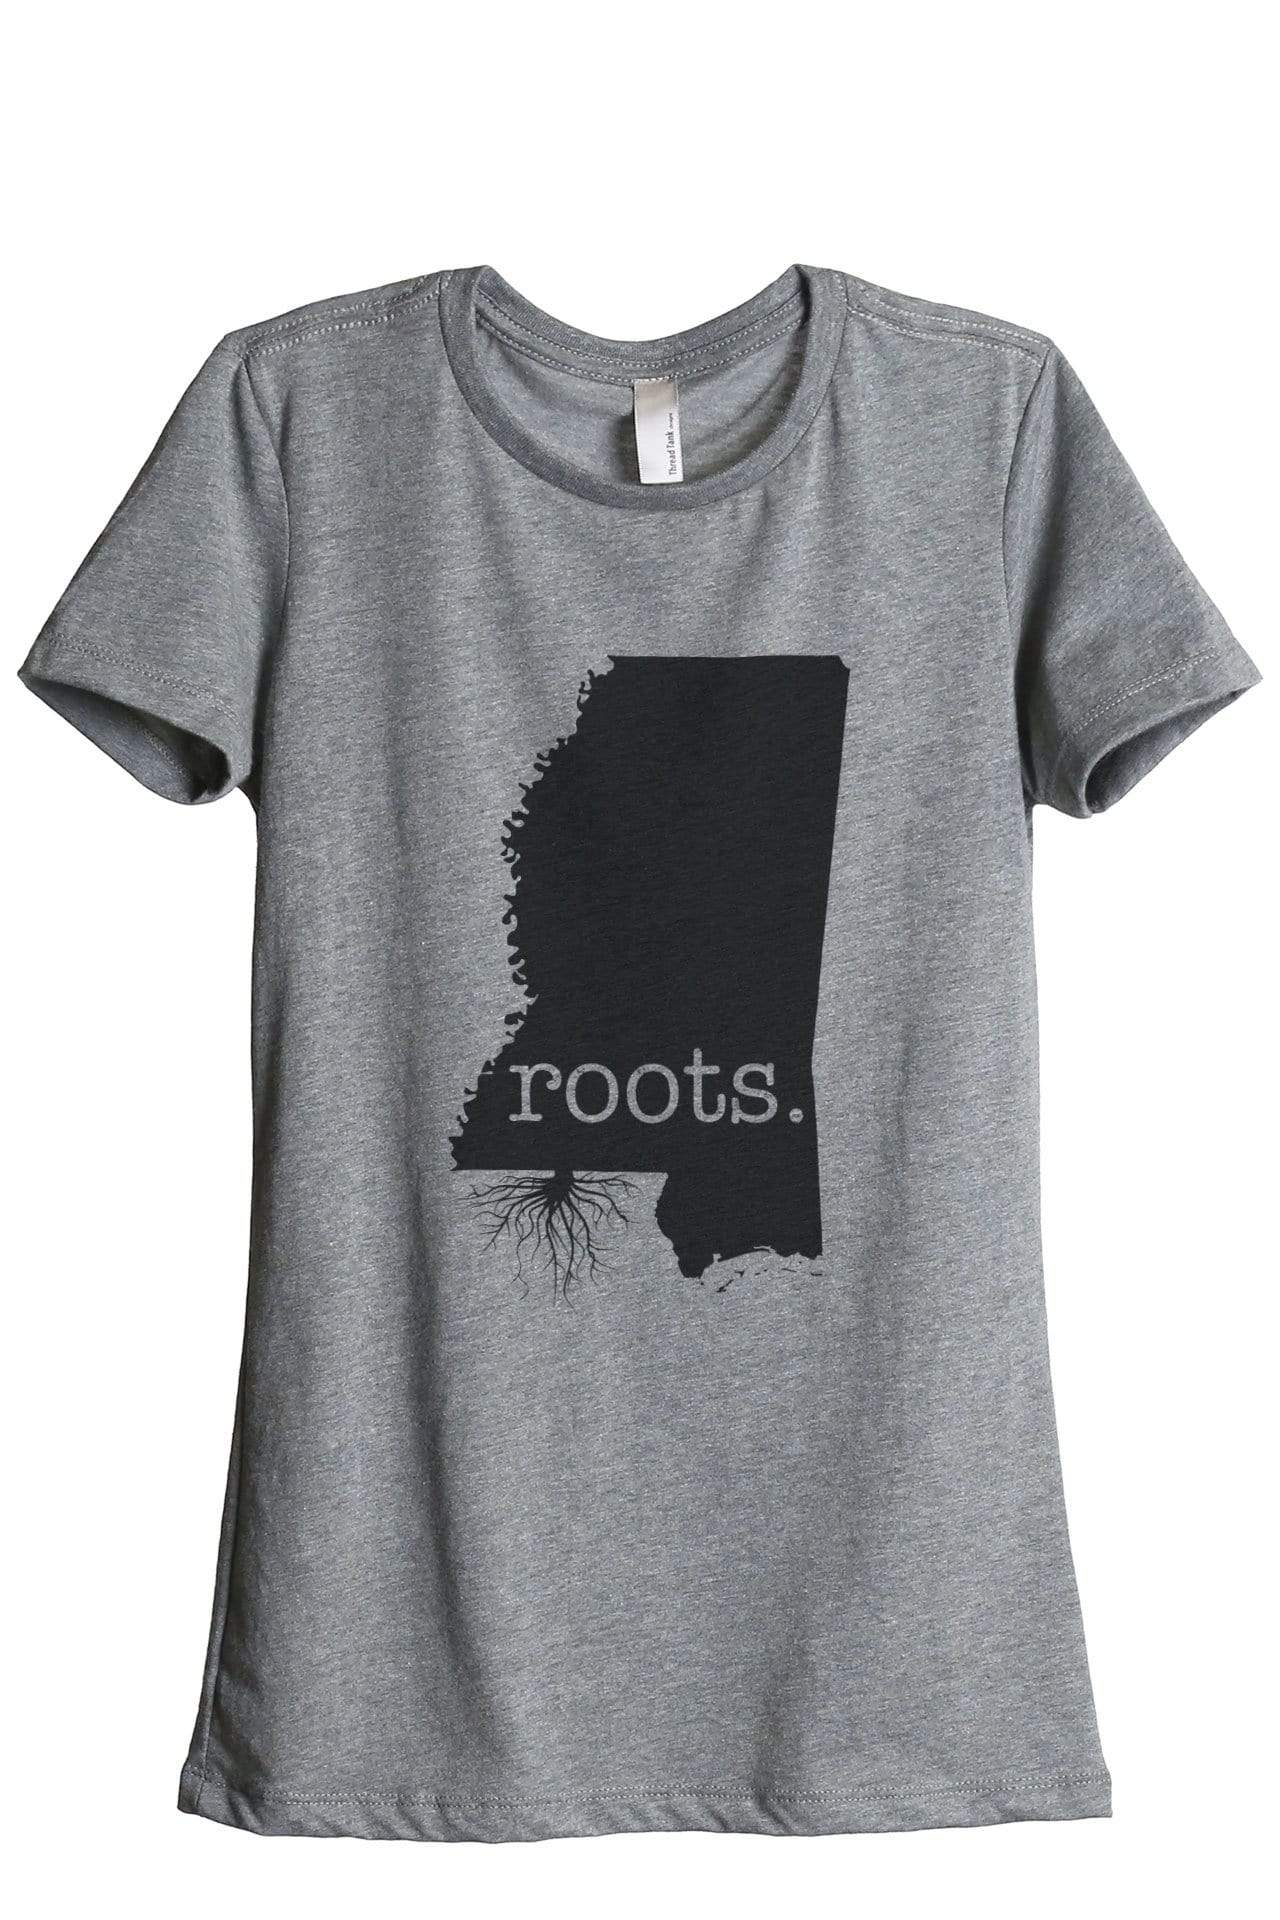 Home Roots State Mississippi MS Women Heather Grey Relaxed Crew T-Shirt Tee Top